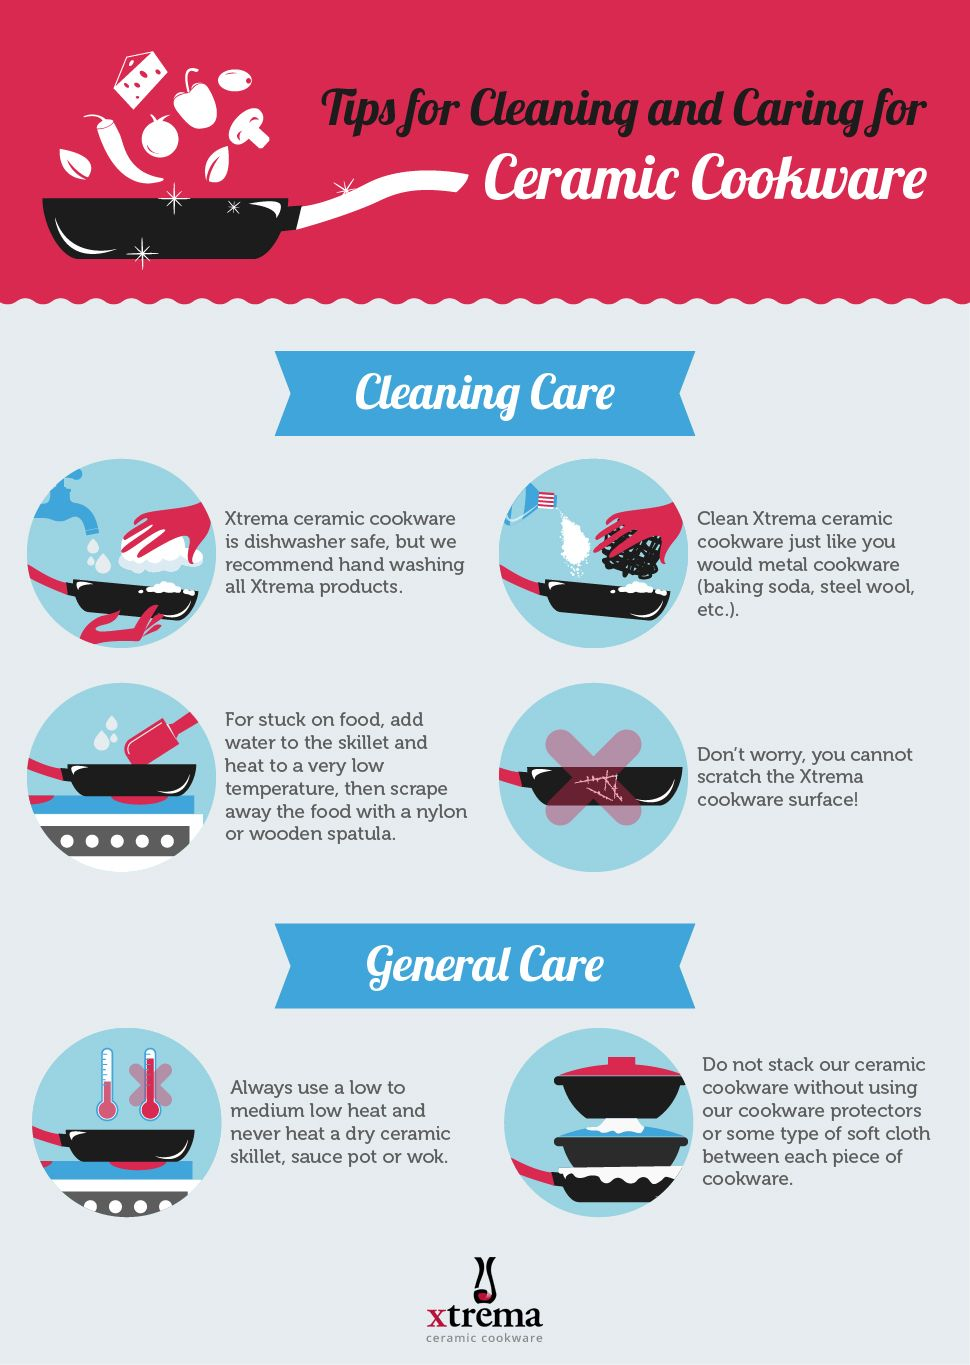 Tips for Cleaning and Caring for Ceramic Cookware